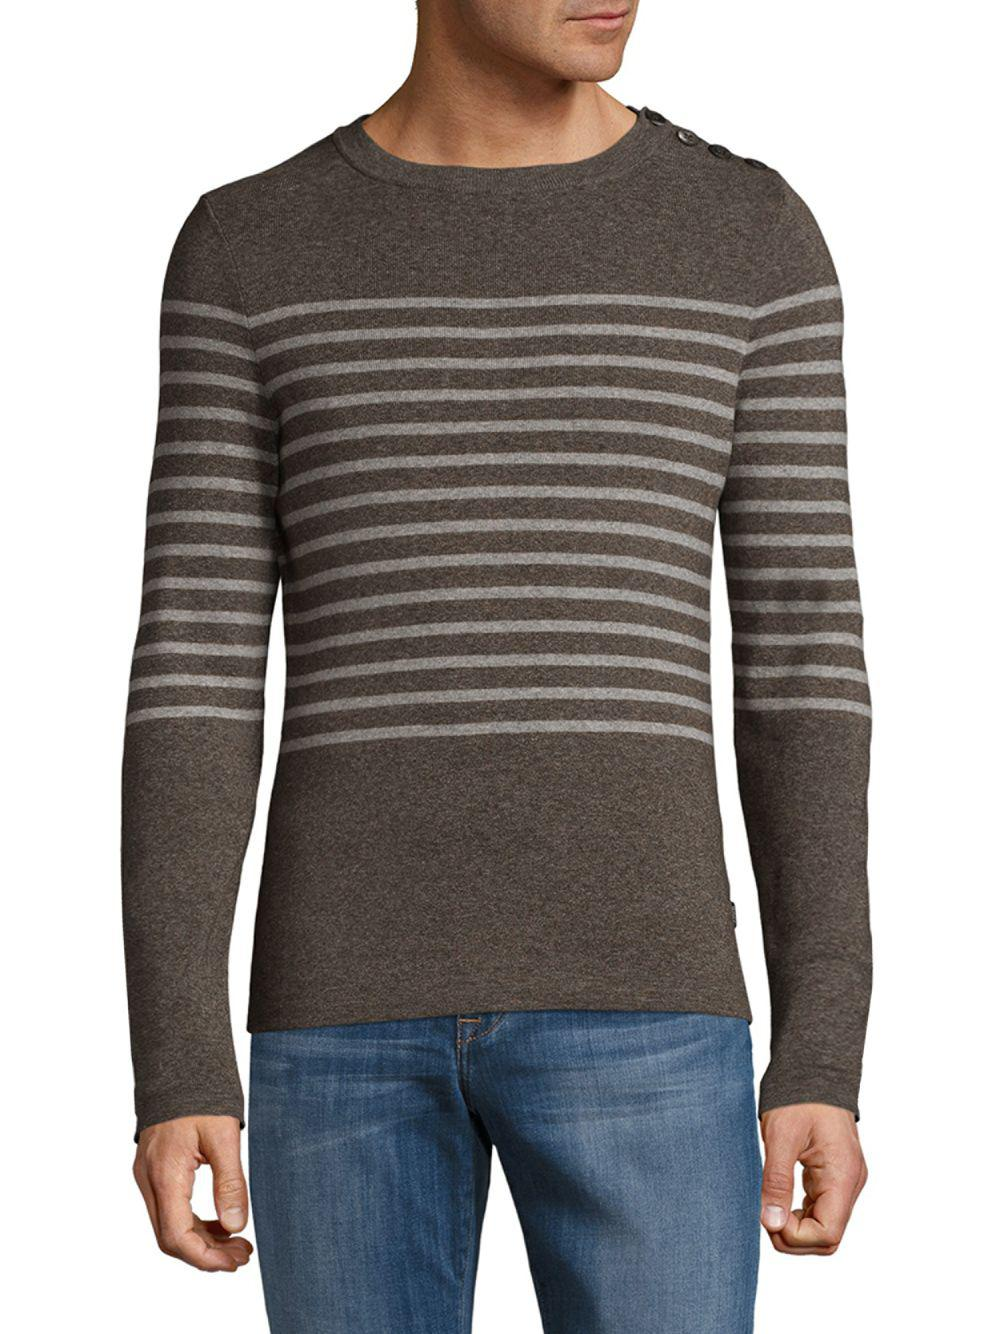 Boss Striped Cotton Sweater in Brown for Men | Lyst